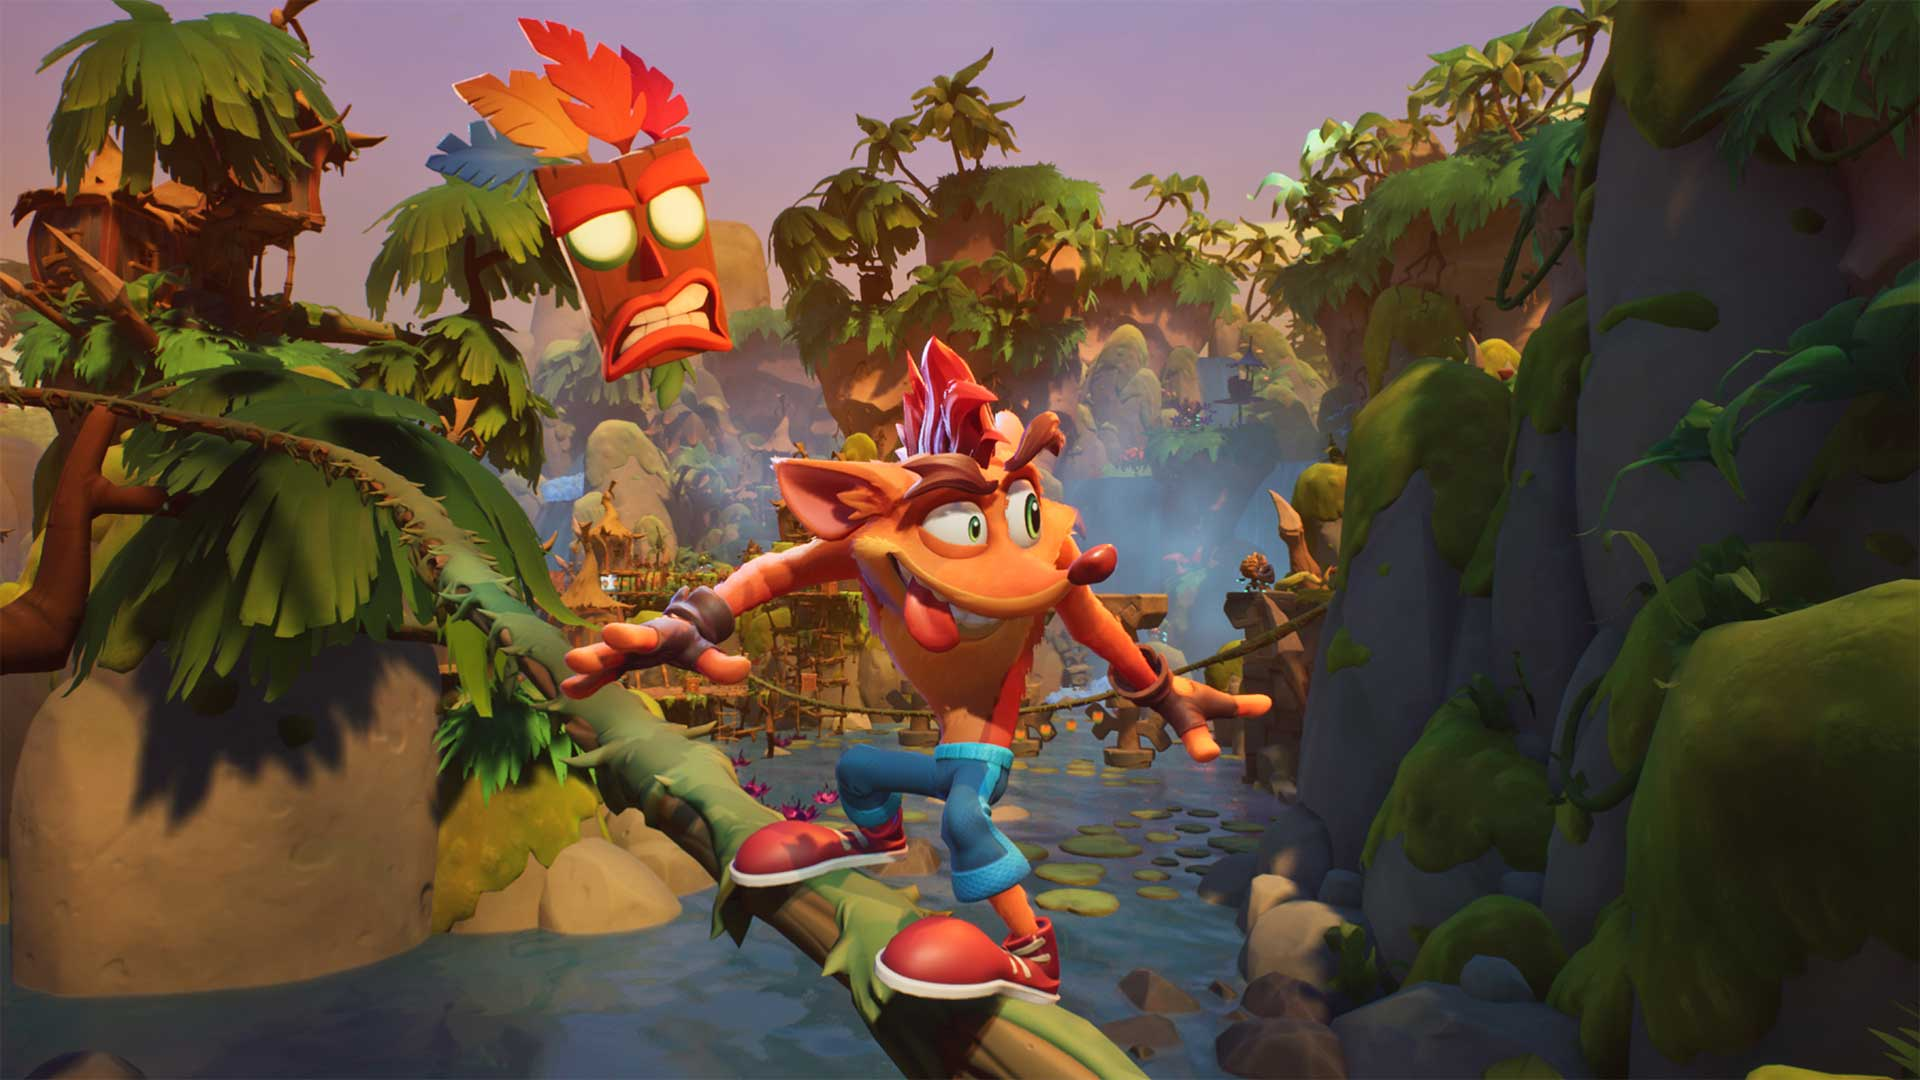 Crash Bandicoot 4: It's About Time Toys for Bob PS4 Xbox One